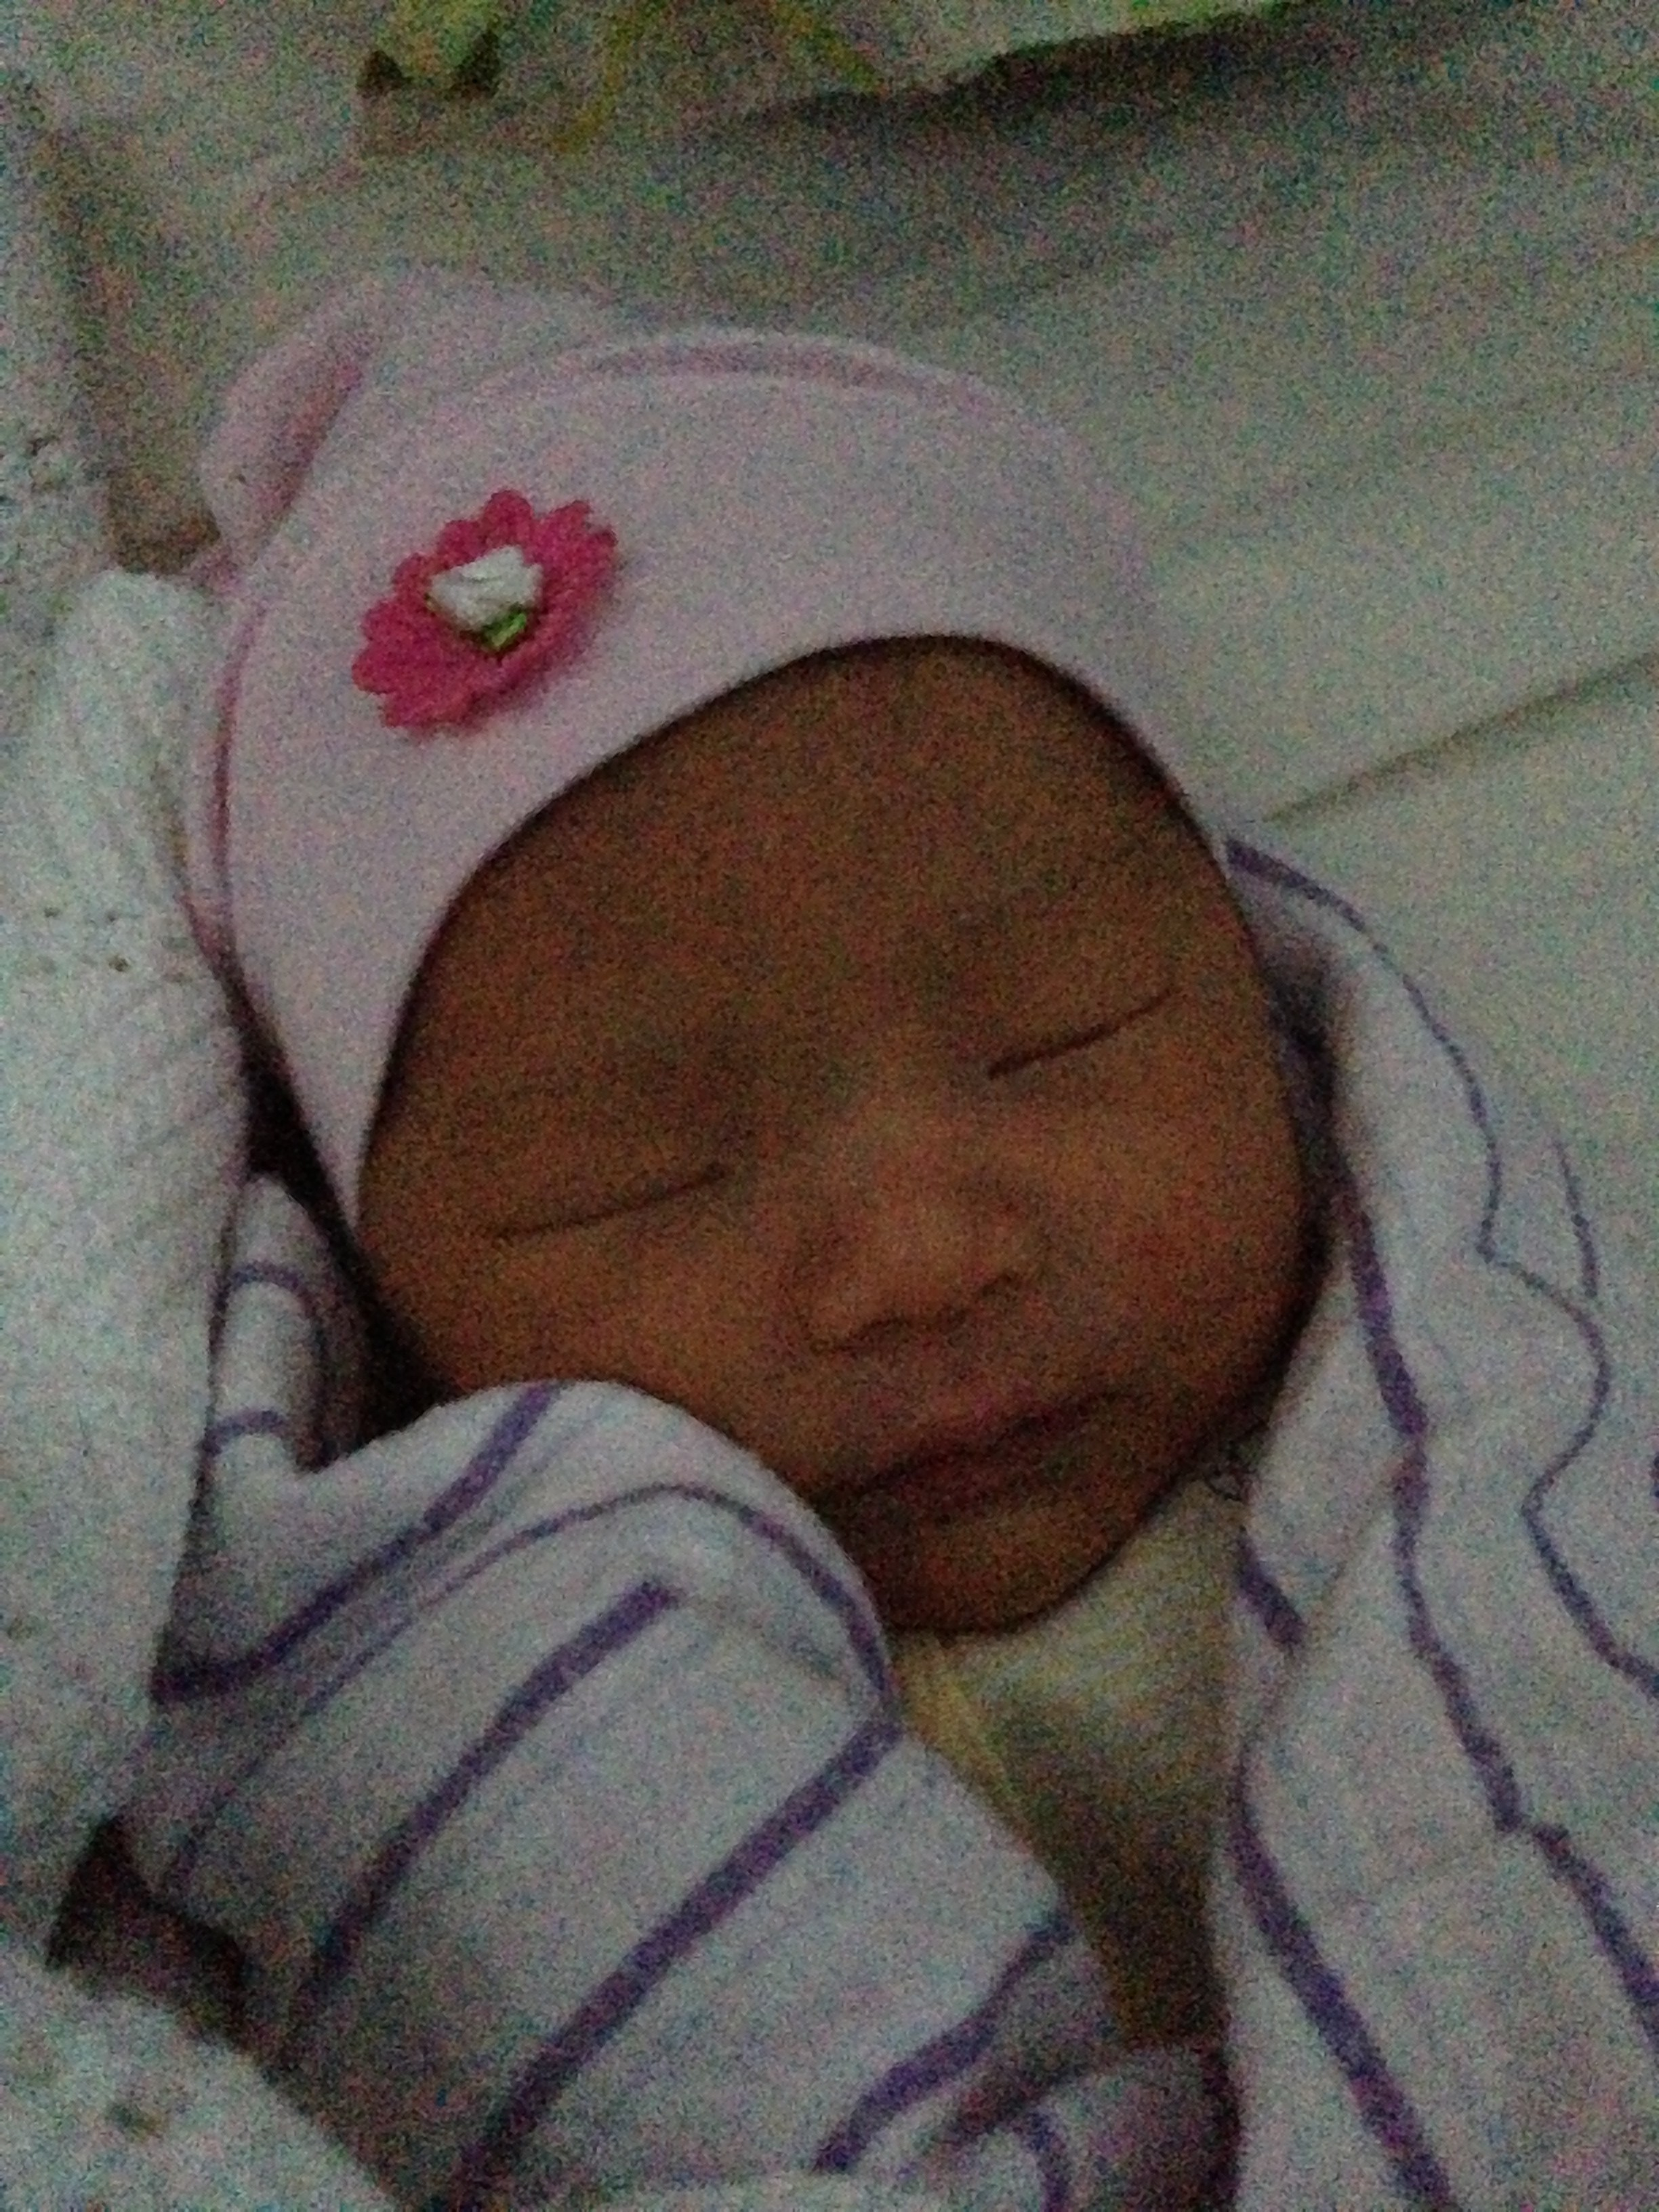 Baby Alina sleeping on day 4.